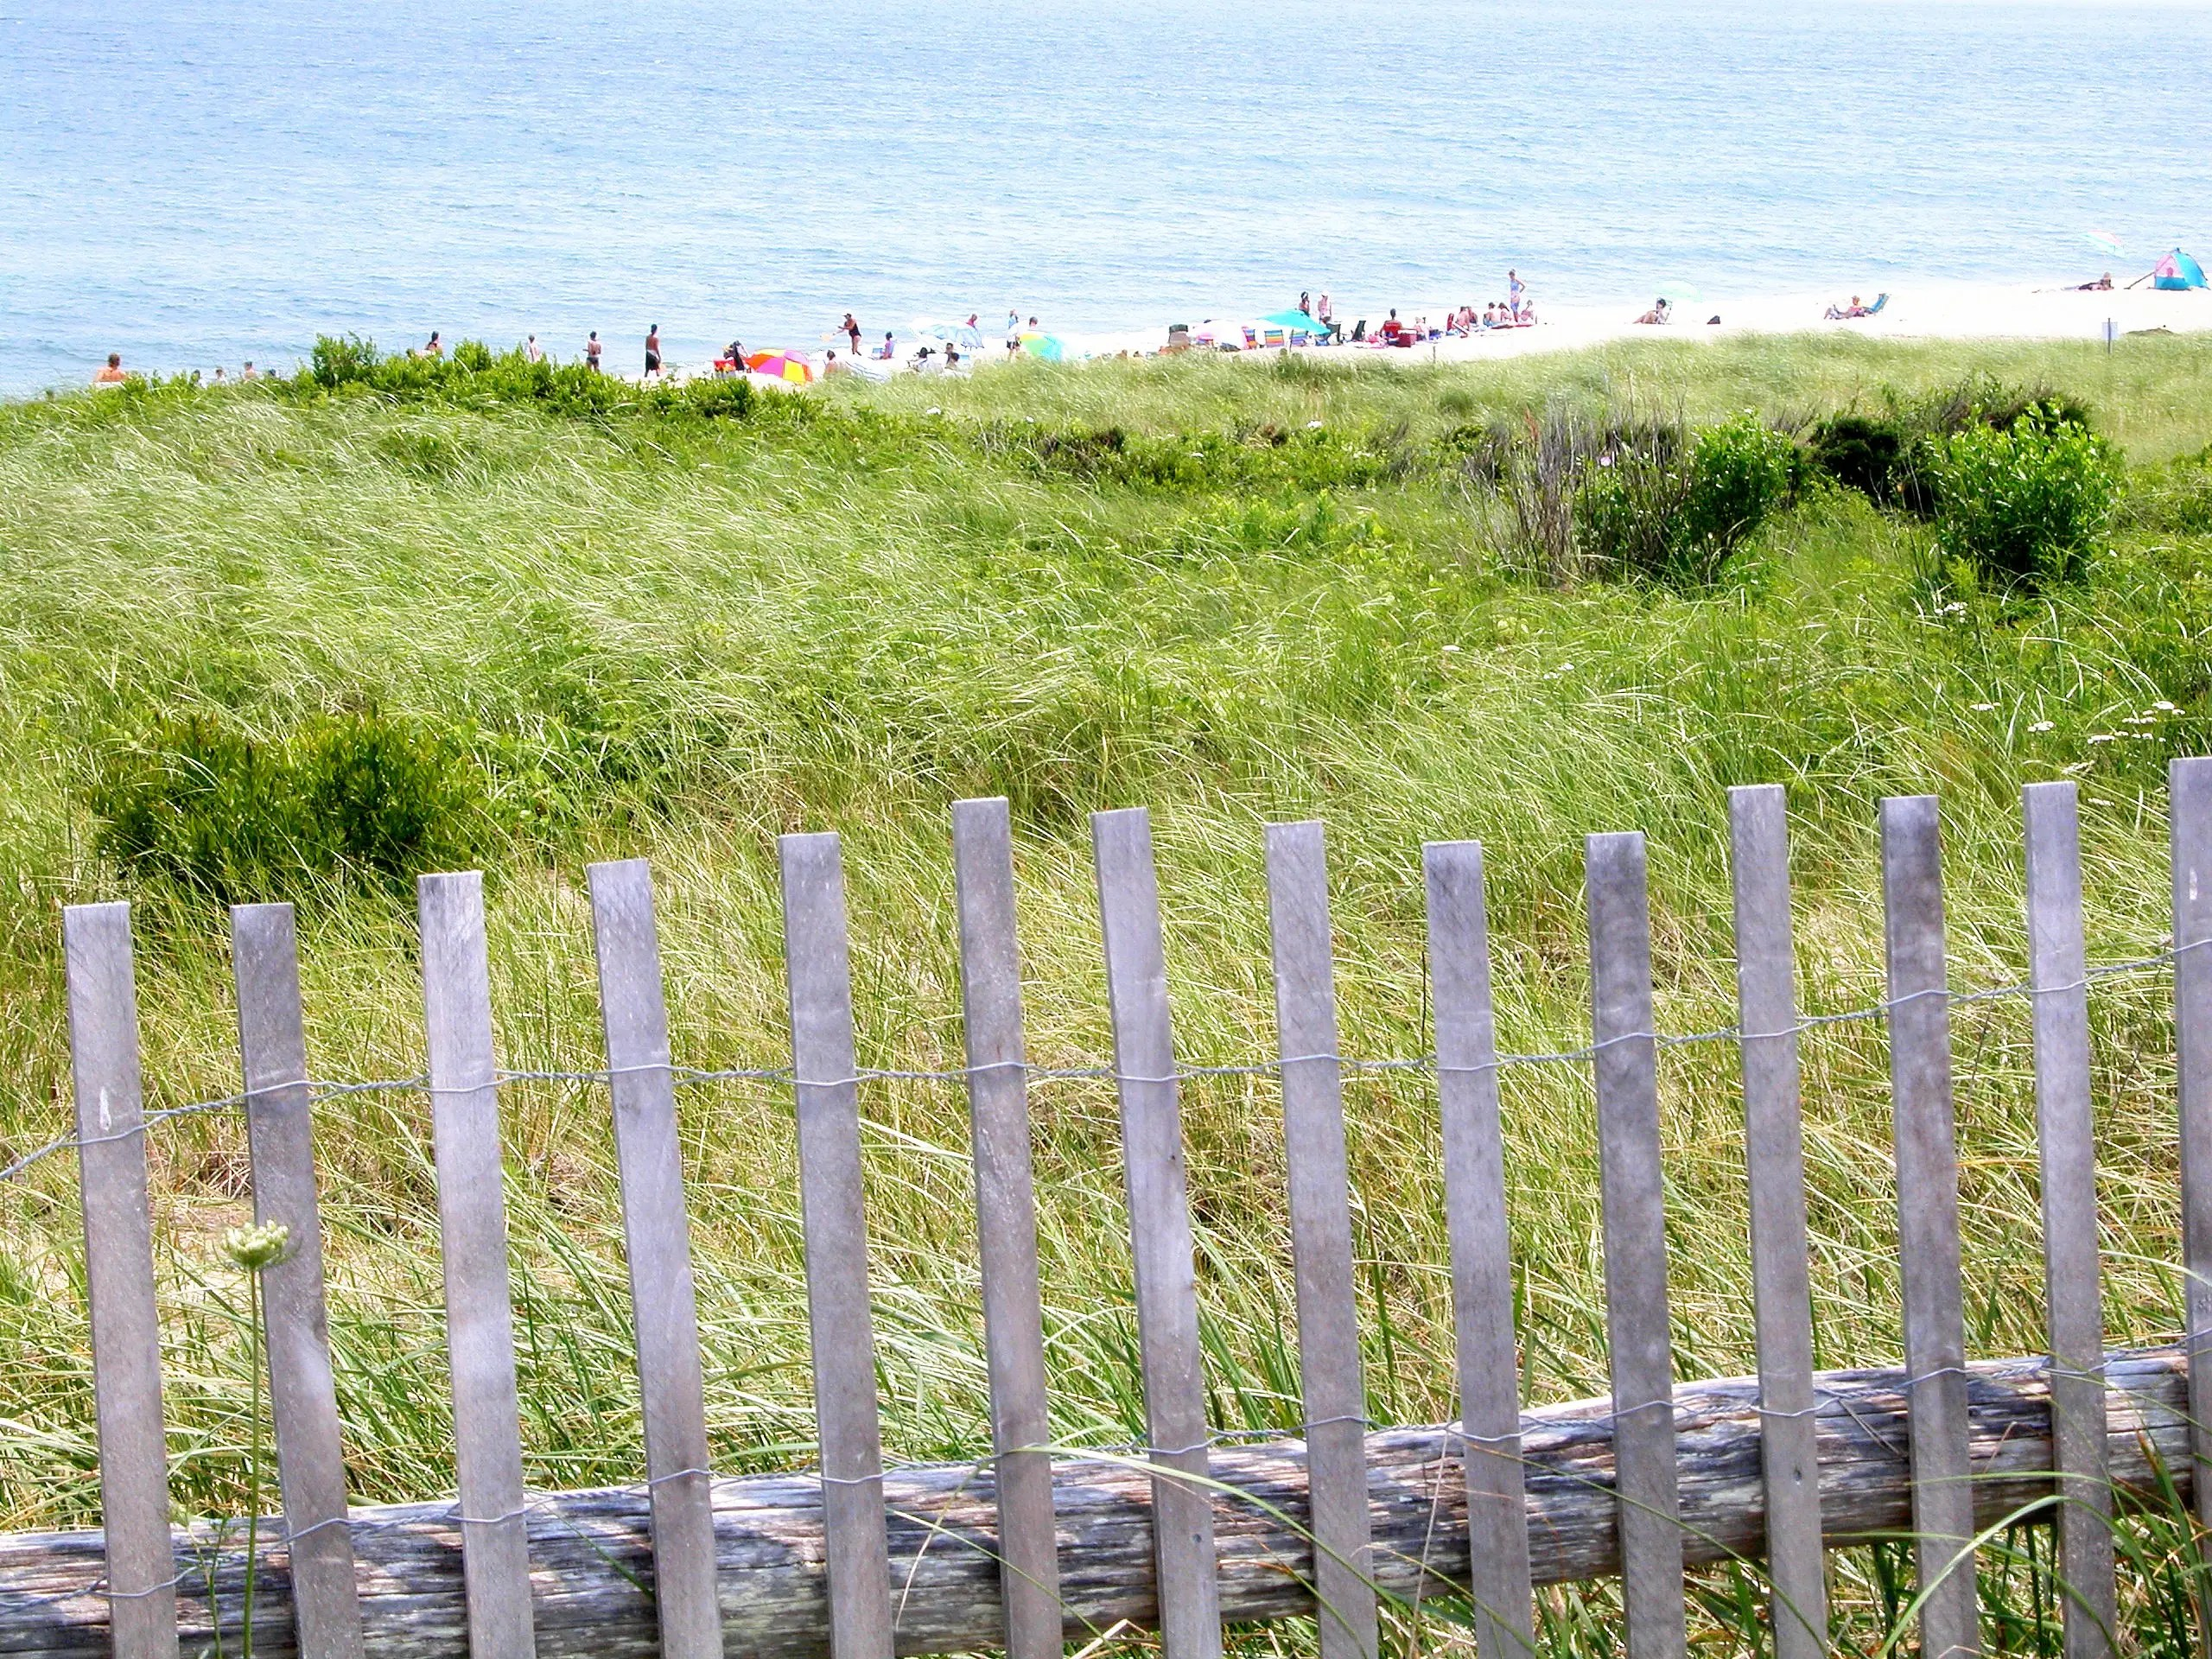 Hike, swim, or relax on pristine Coast Guard Beach in Massachusetts, which is part of the Cape Cod National Seashore.